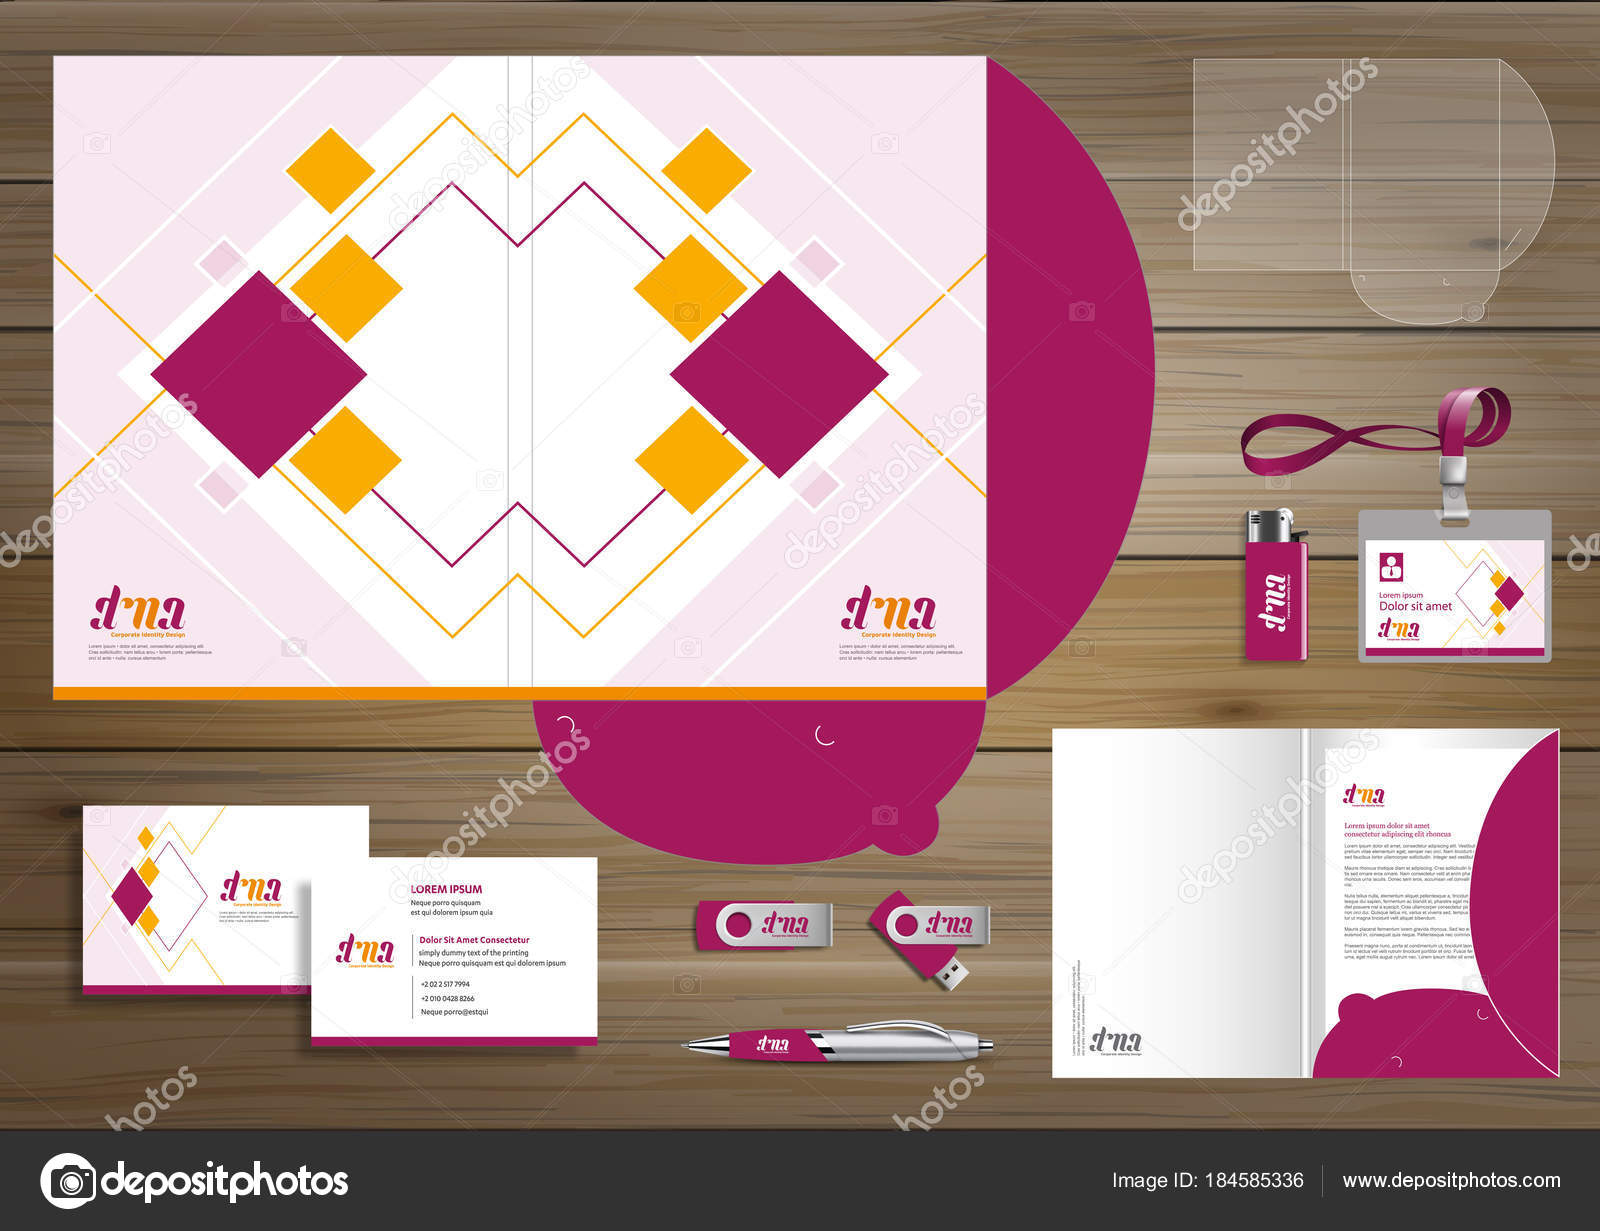 Folder template design digital technology company element stationery folder template design digital technology company element stationery people community stock vector accmission Images